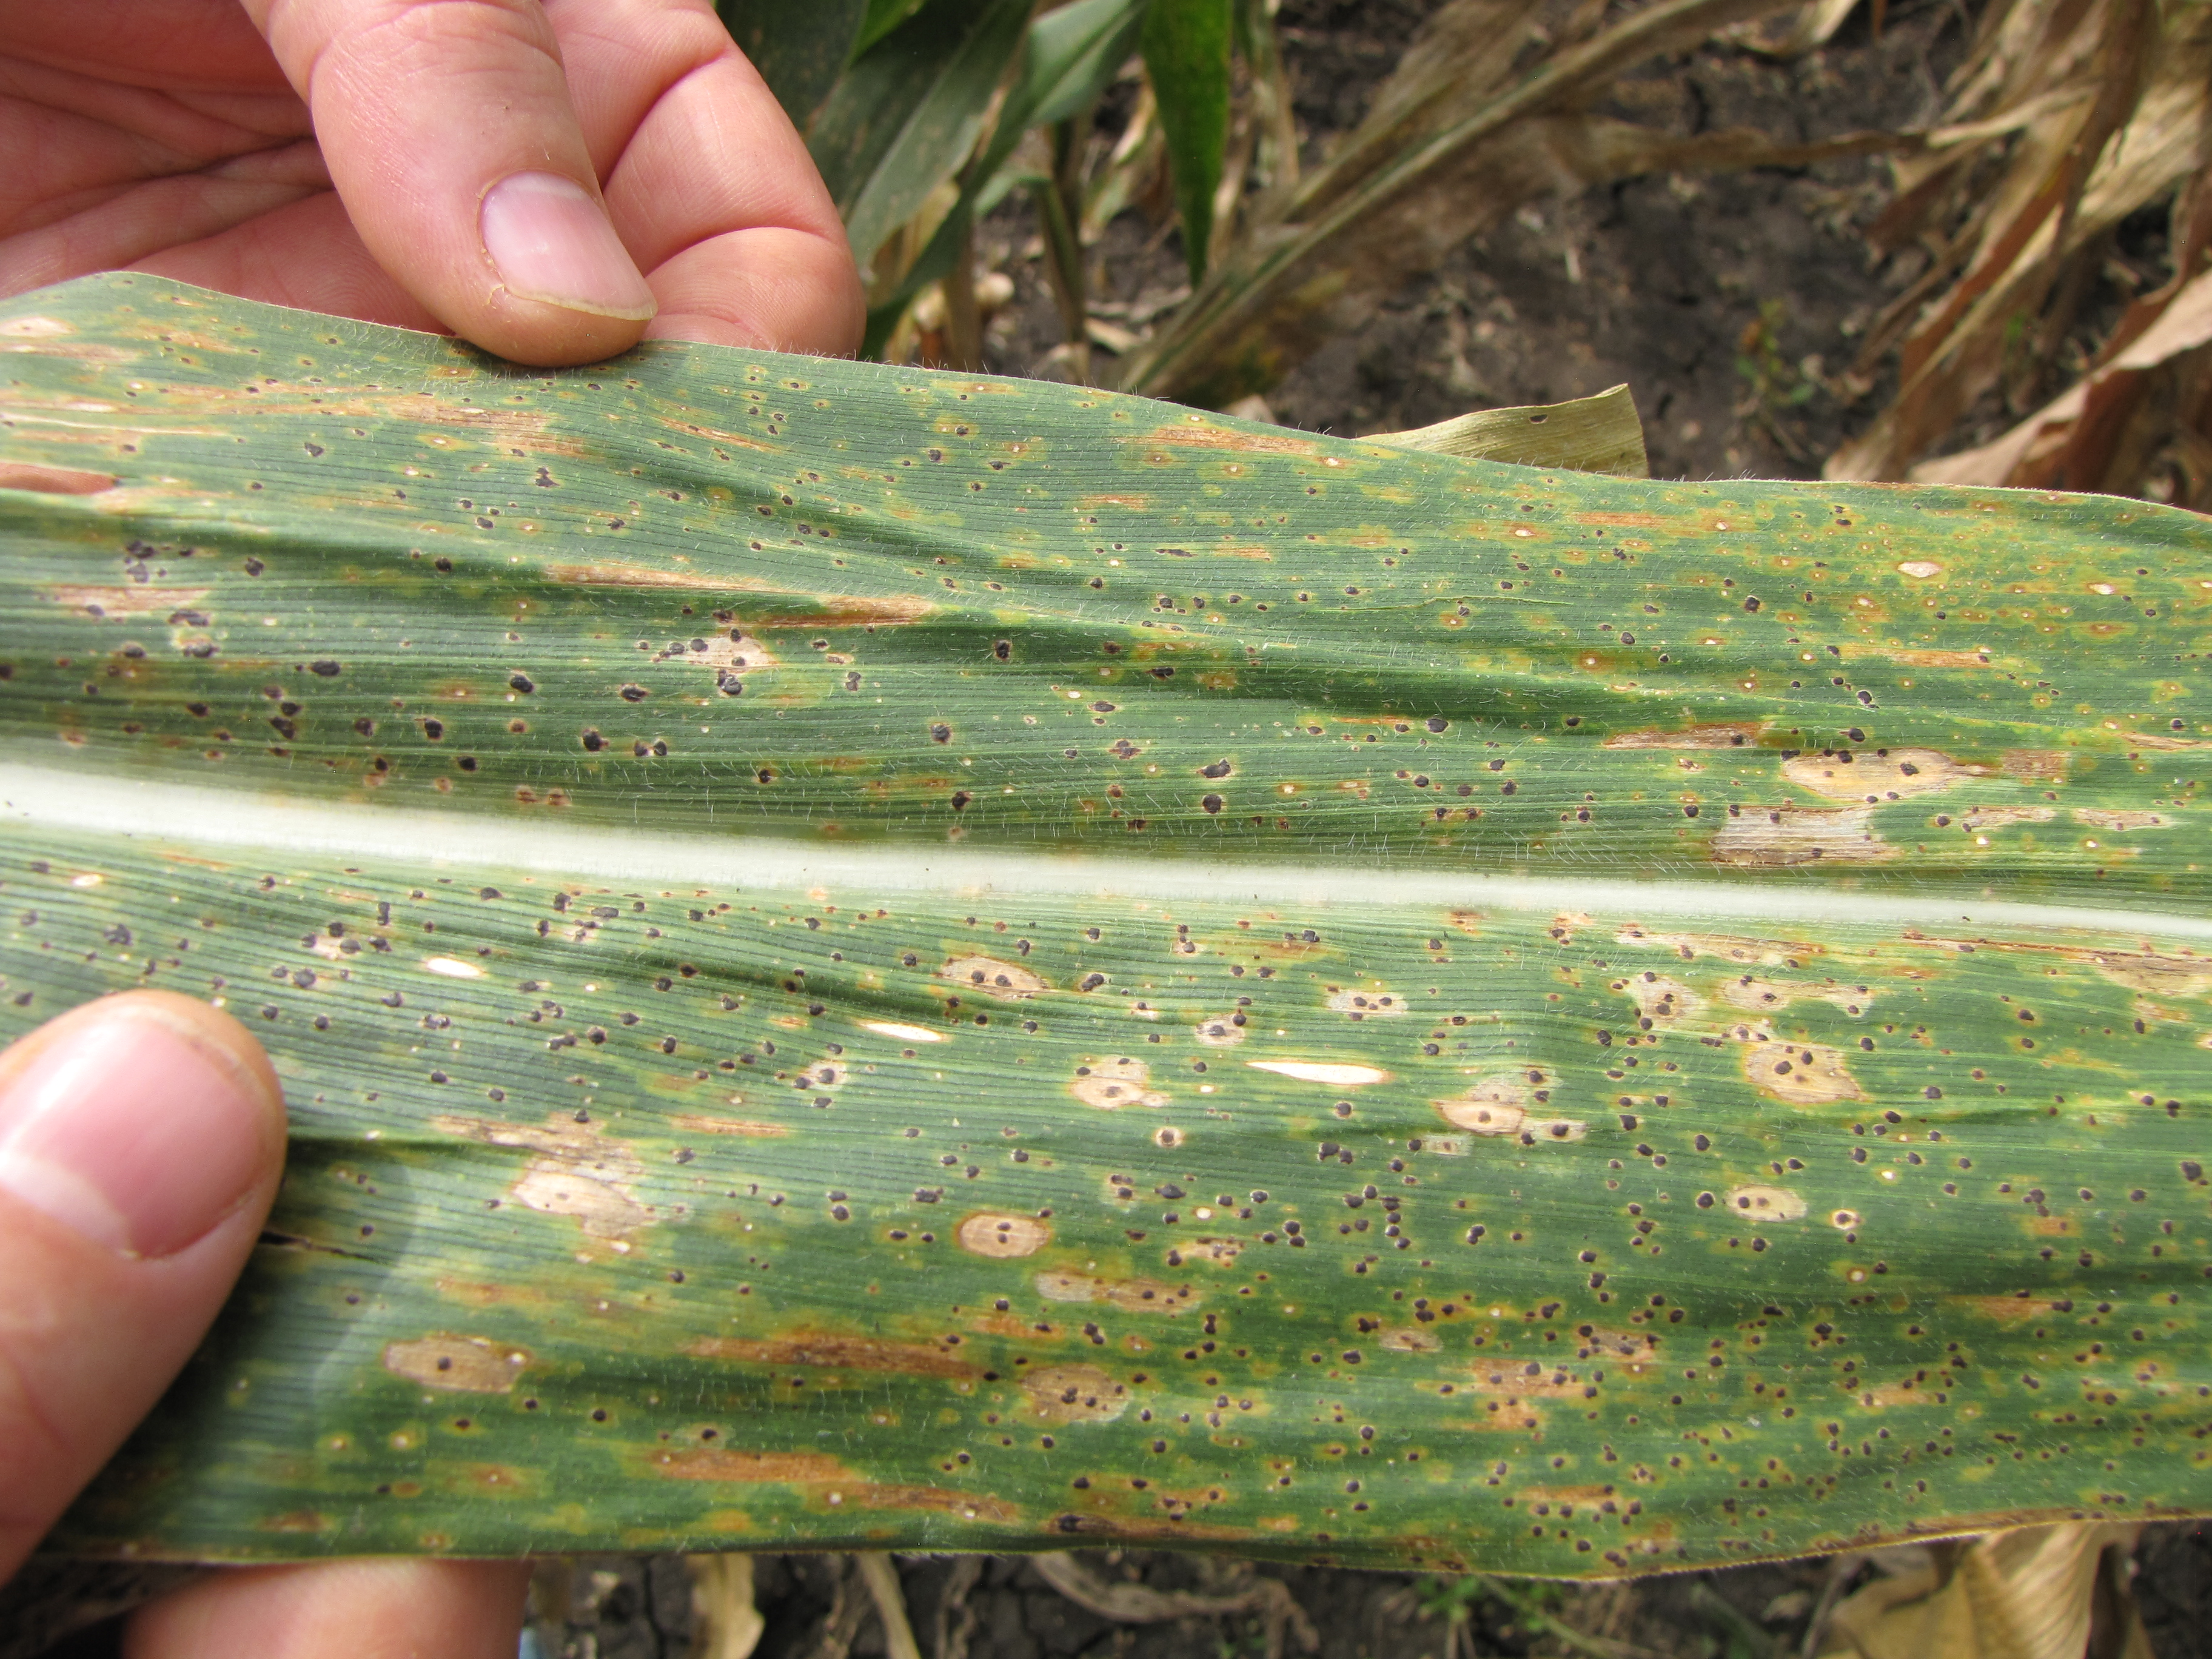 """The first stage of fungal maize disease TSC, with tiny, black """"tar spots"""" covering the leaf. The spots will soon turn into lesions that kill the leaf, preventing photosynthesis from occurring."""